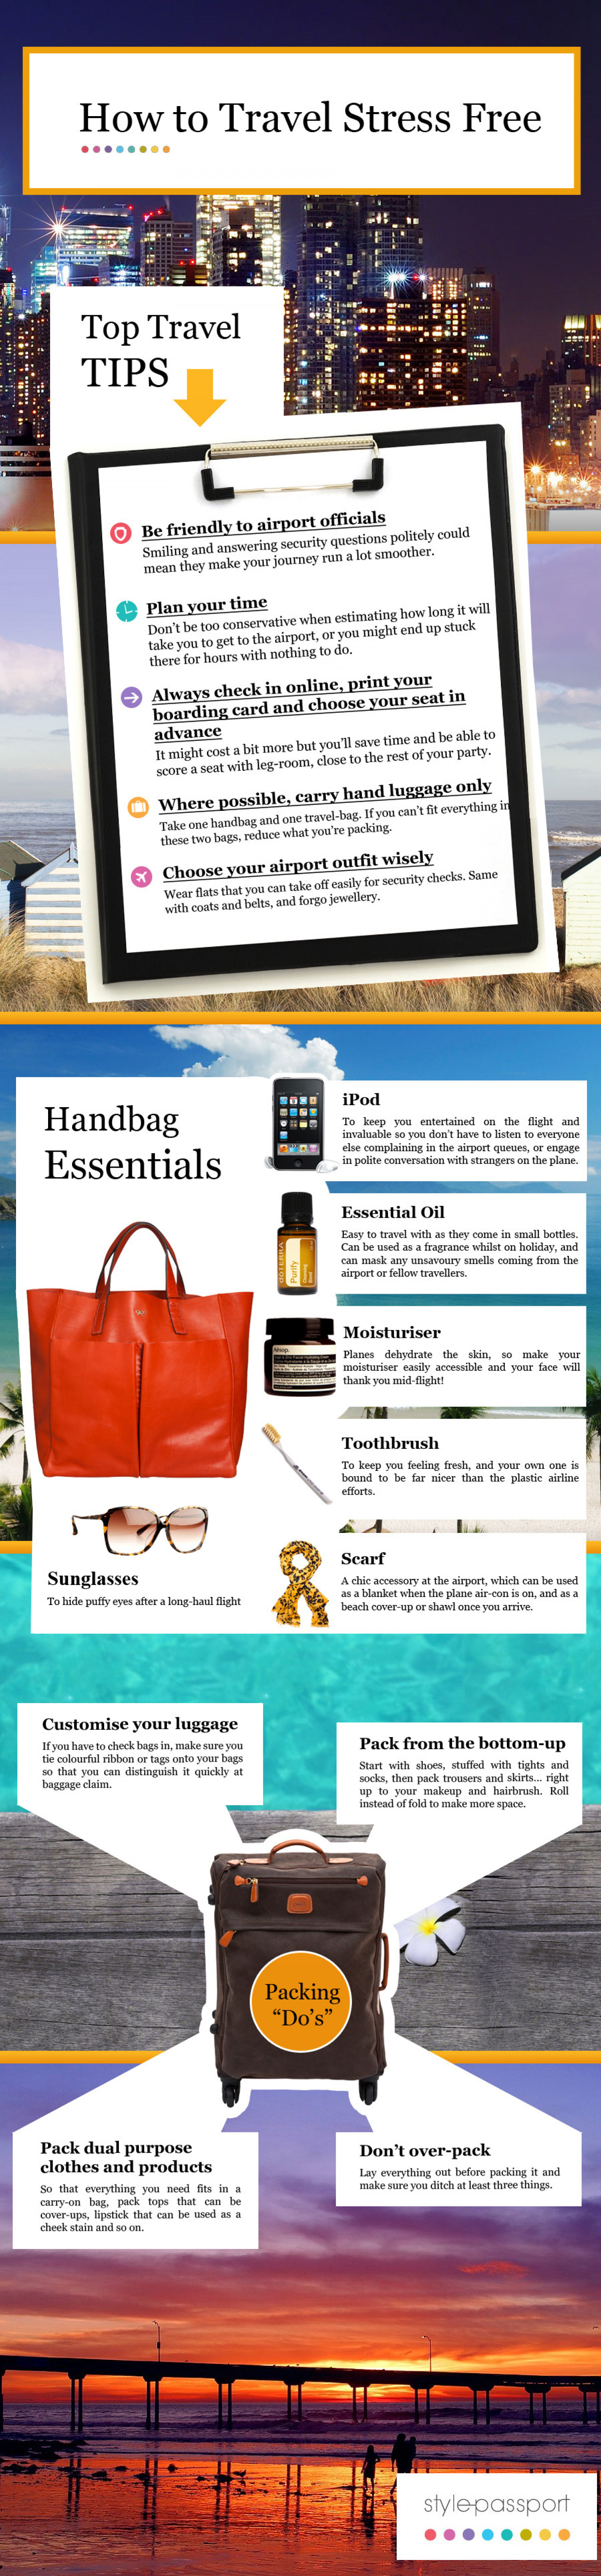 How to Travel Stress Free Infographic